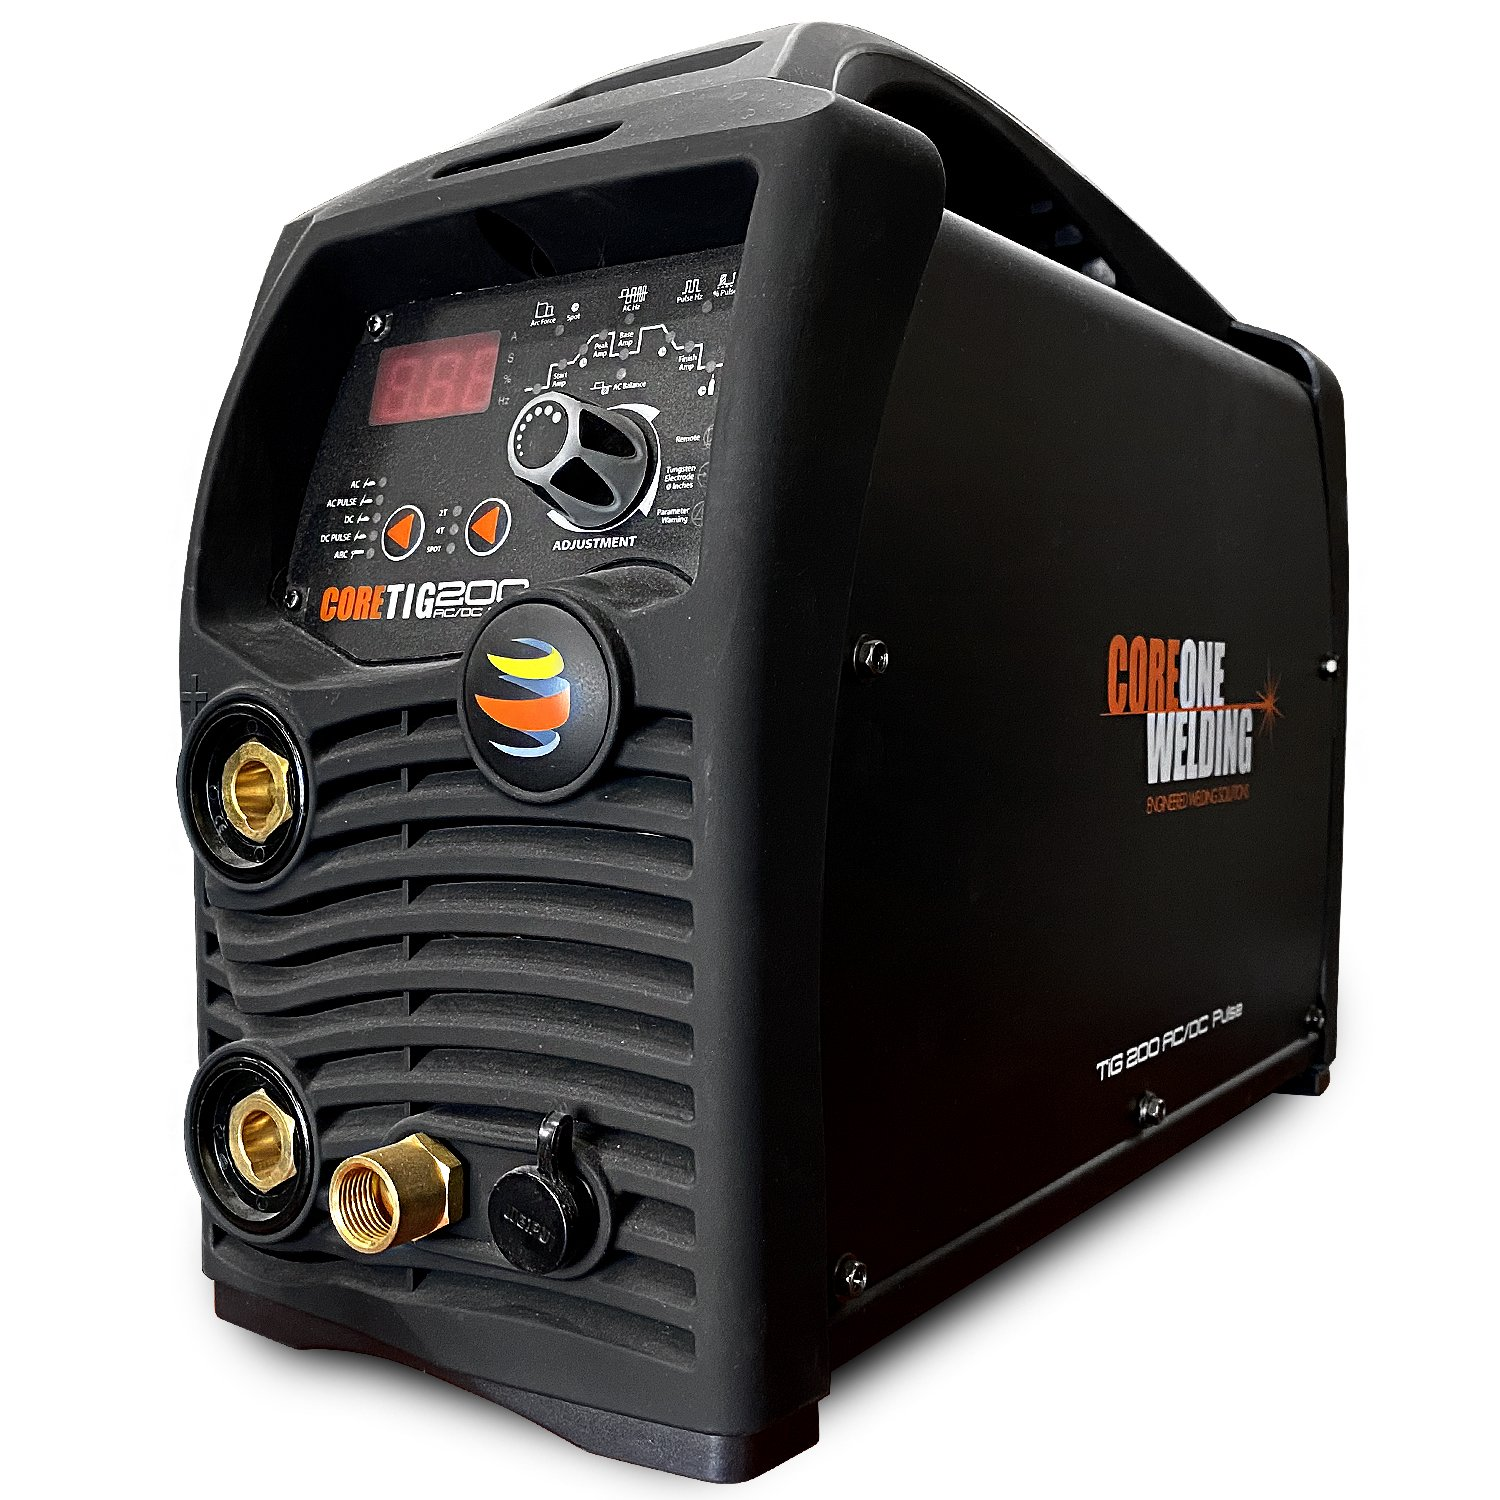 CORTIG 200 AC/DC PULSE TIG - Digital Inverter Welder COR 200ACDC